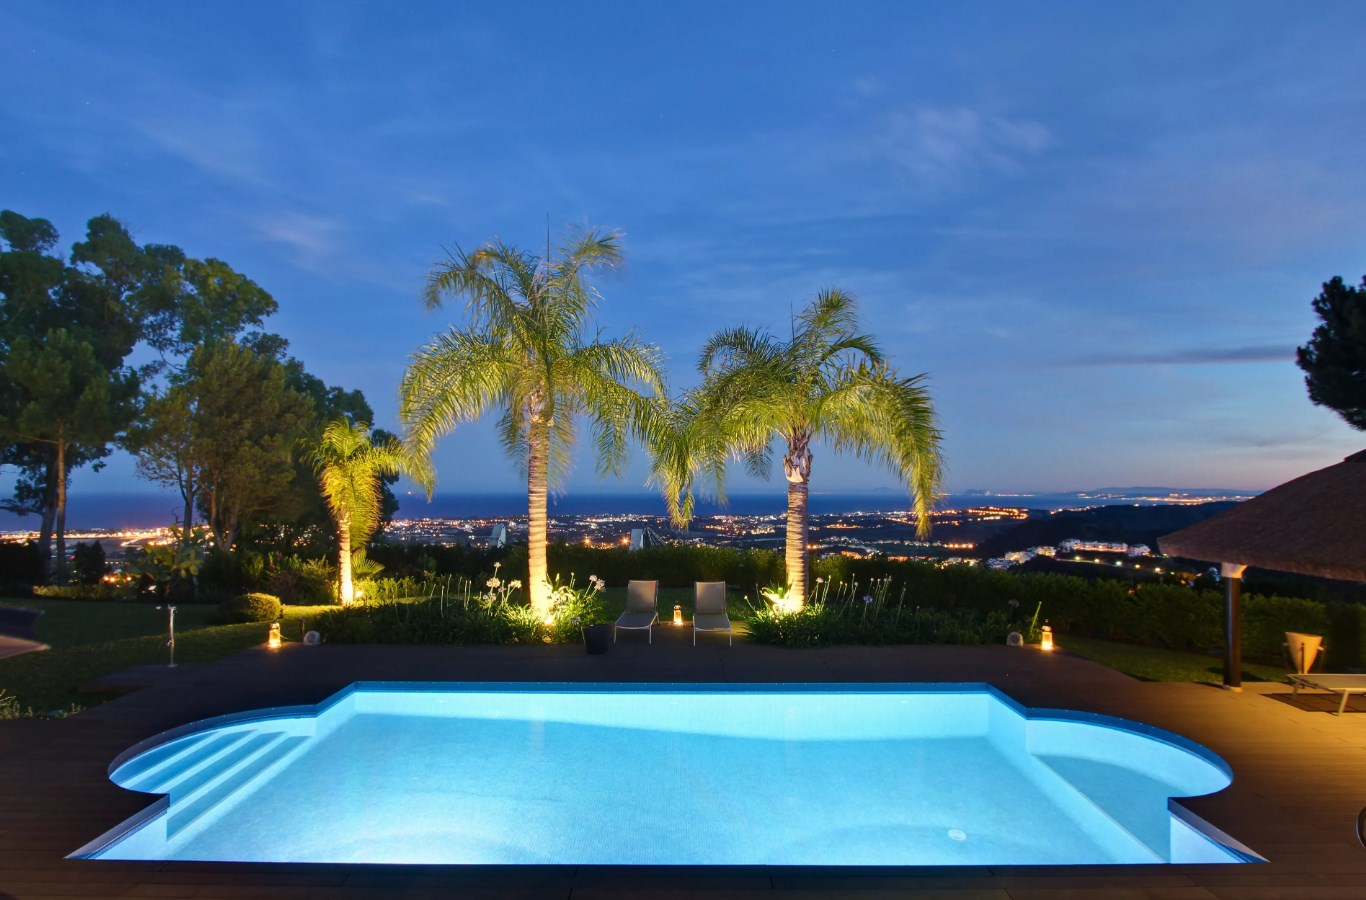 What are the Best Types of Trees to have around your pool landscaping? 1